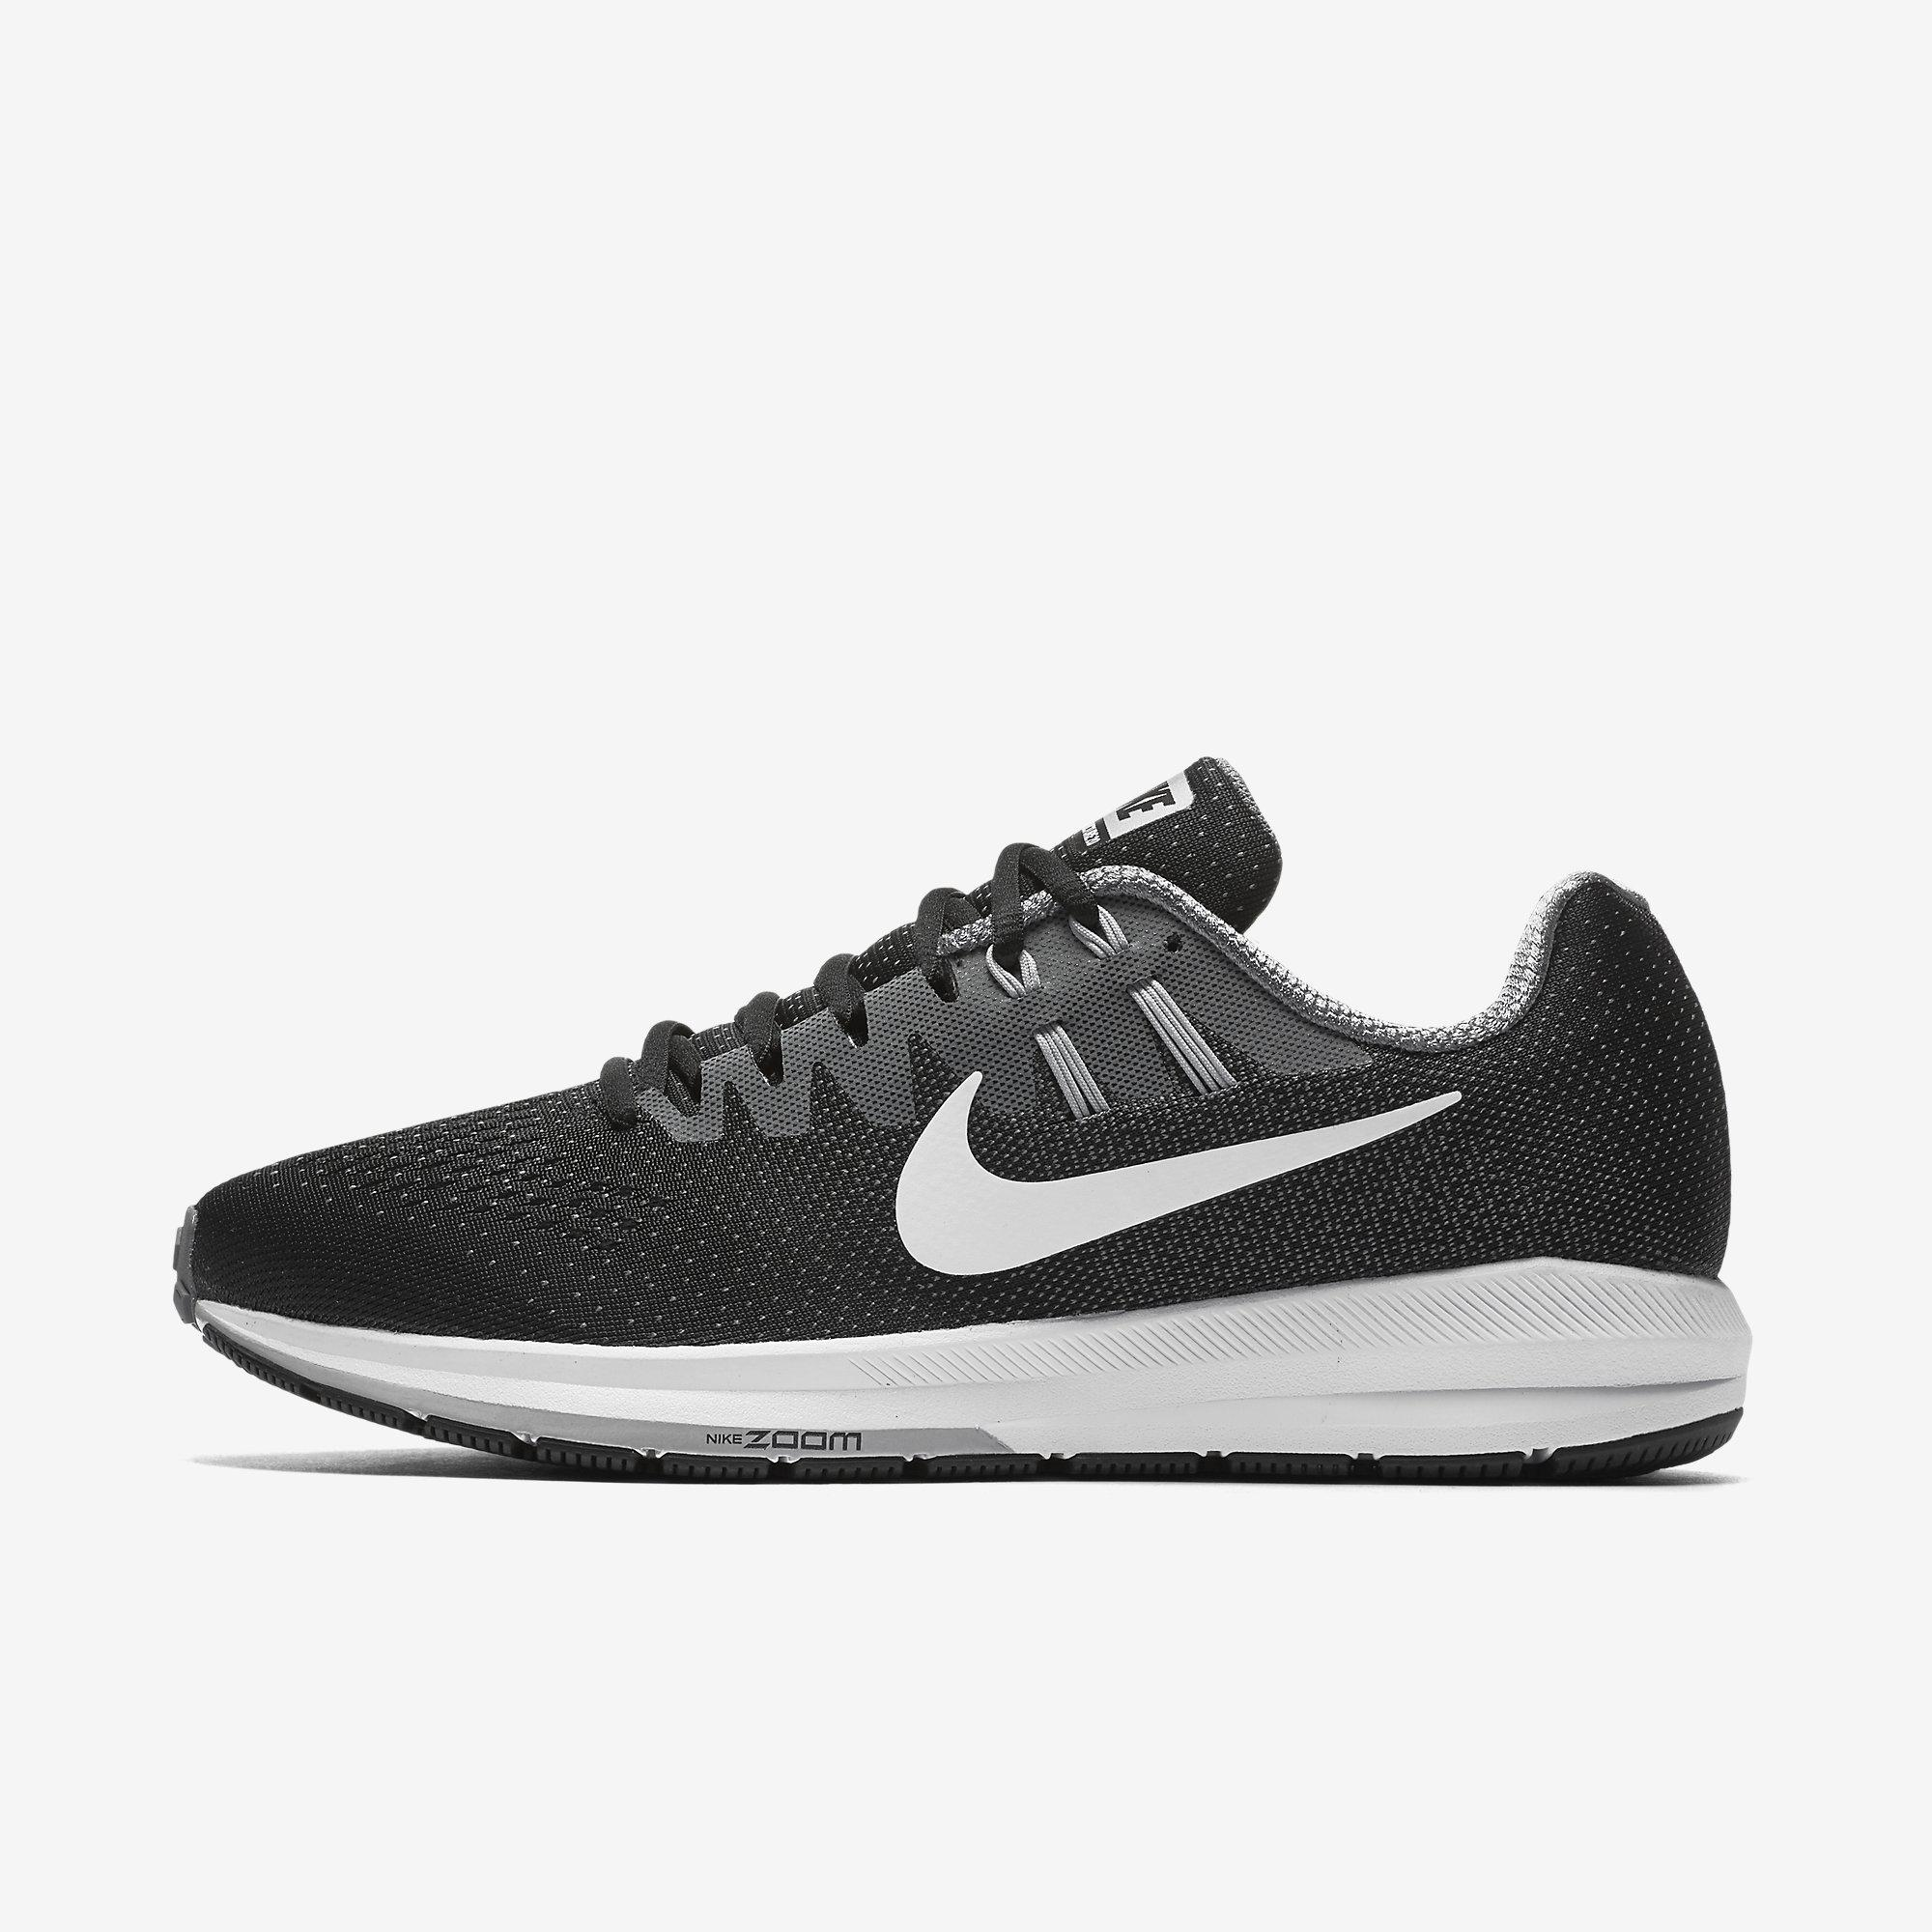 cheap for discount 11566 1299f Nike Mens Air Zoom Structure 20 Running Shoes - Black Grey - Tennisnuts.com